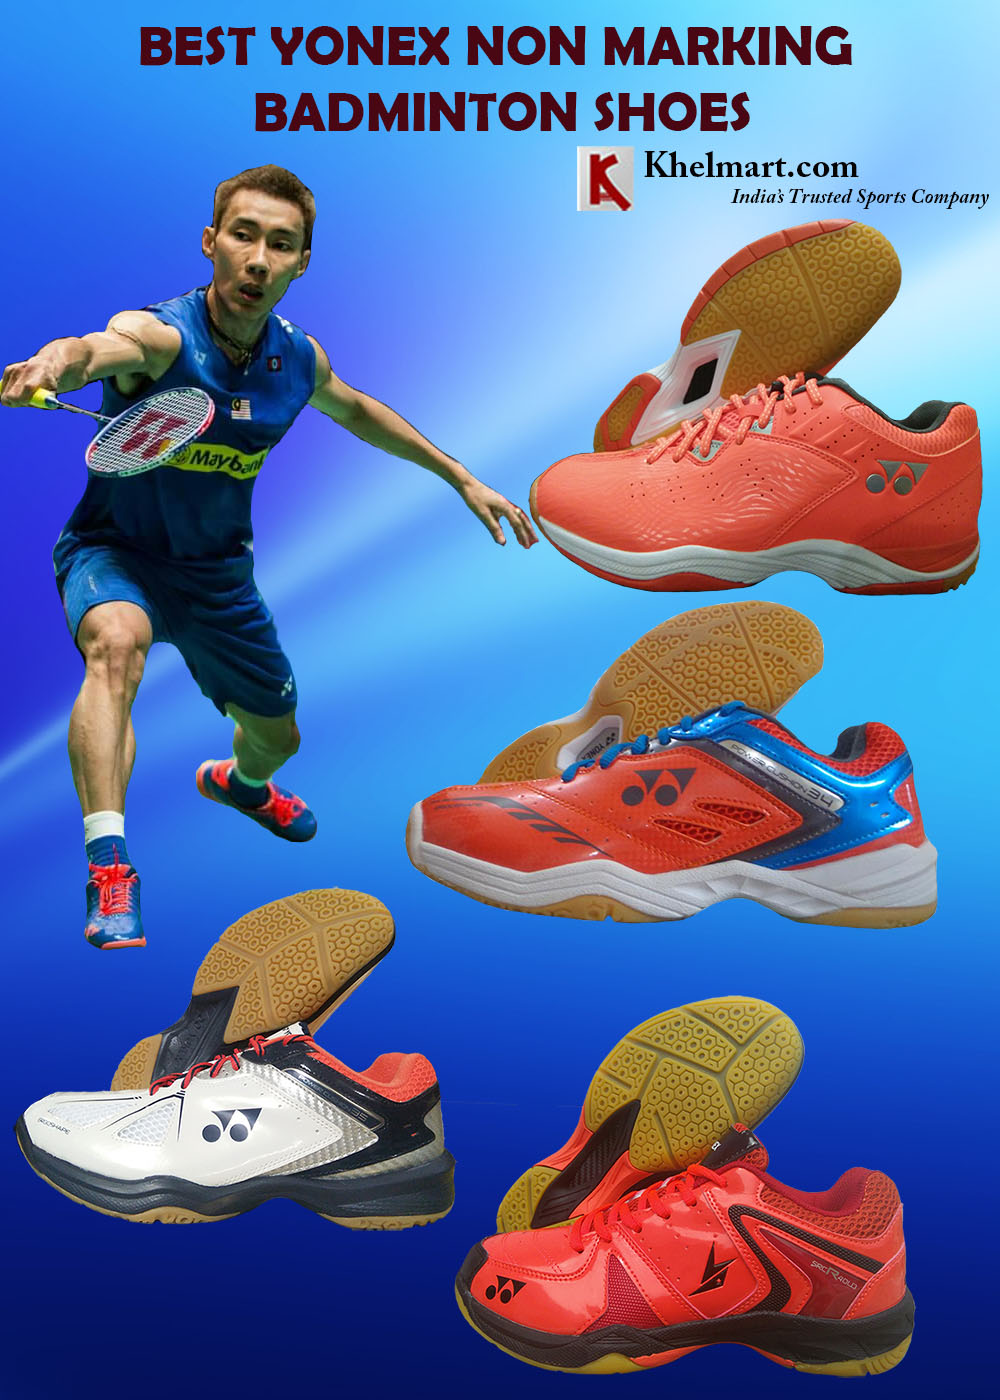 BEST YONEX NON MARKING BADMINTON SHOES